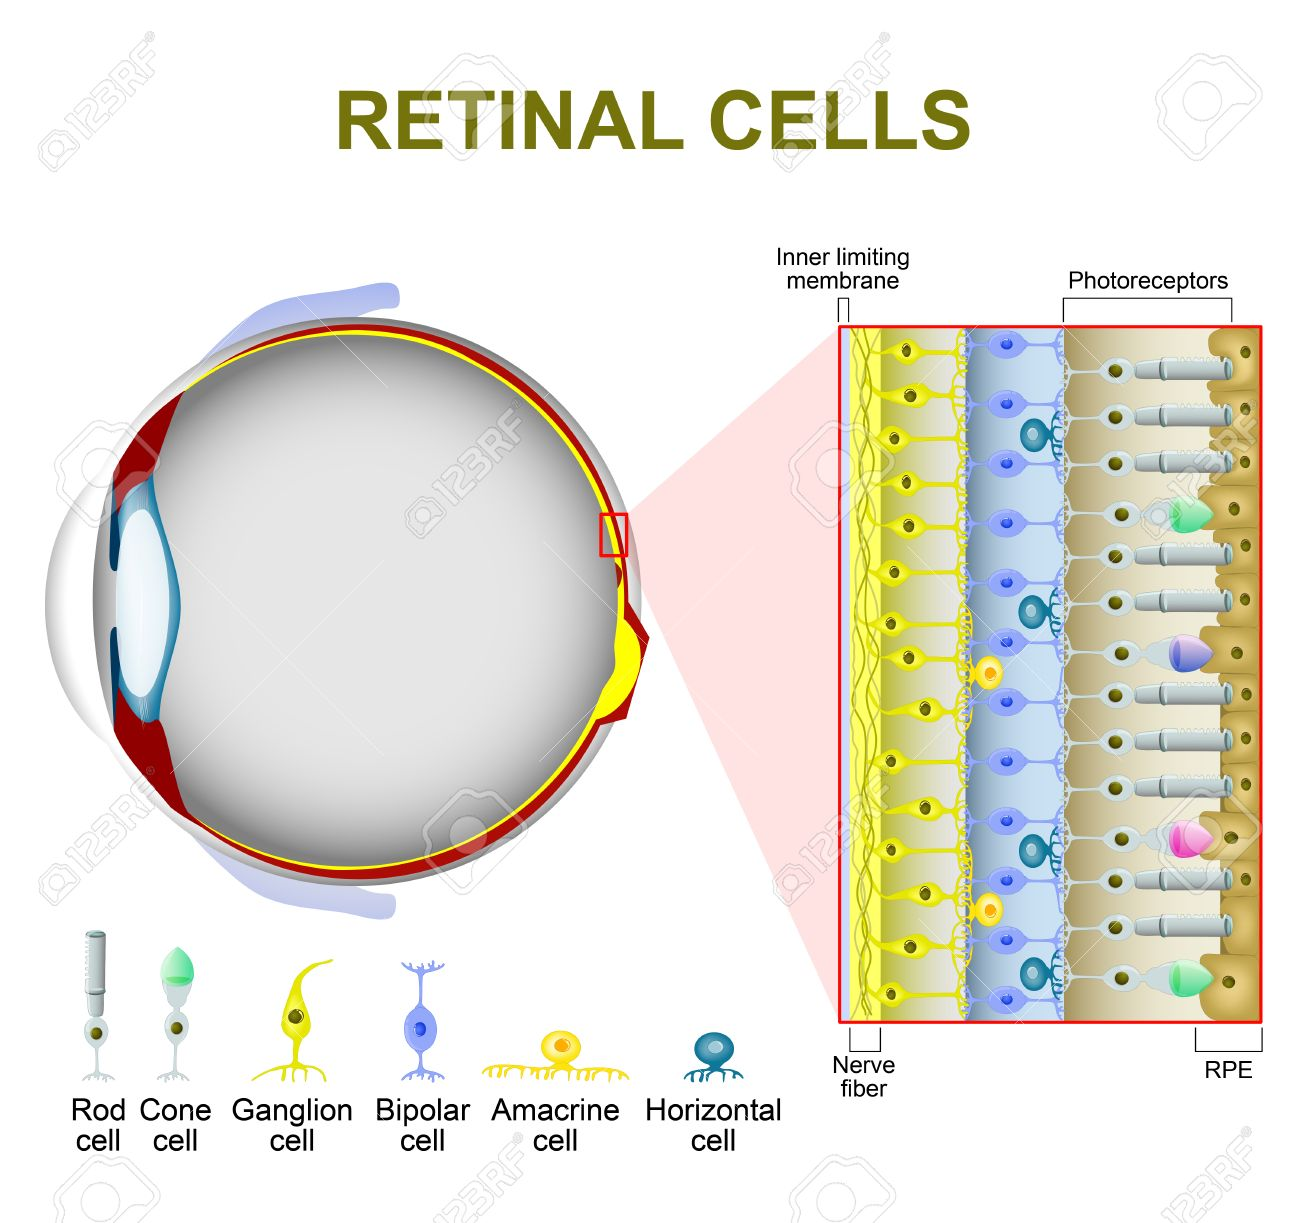 Photoreceptor cells in the retina of the eye retinal cells photoreceptor cells in the retina of the eye retinal cells rod cell and cone ccuart Images